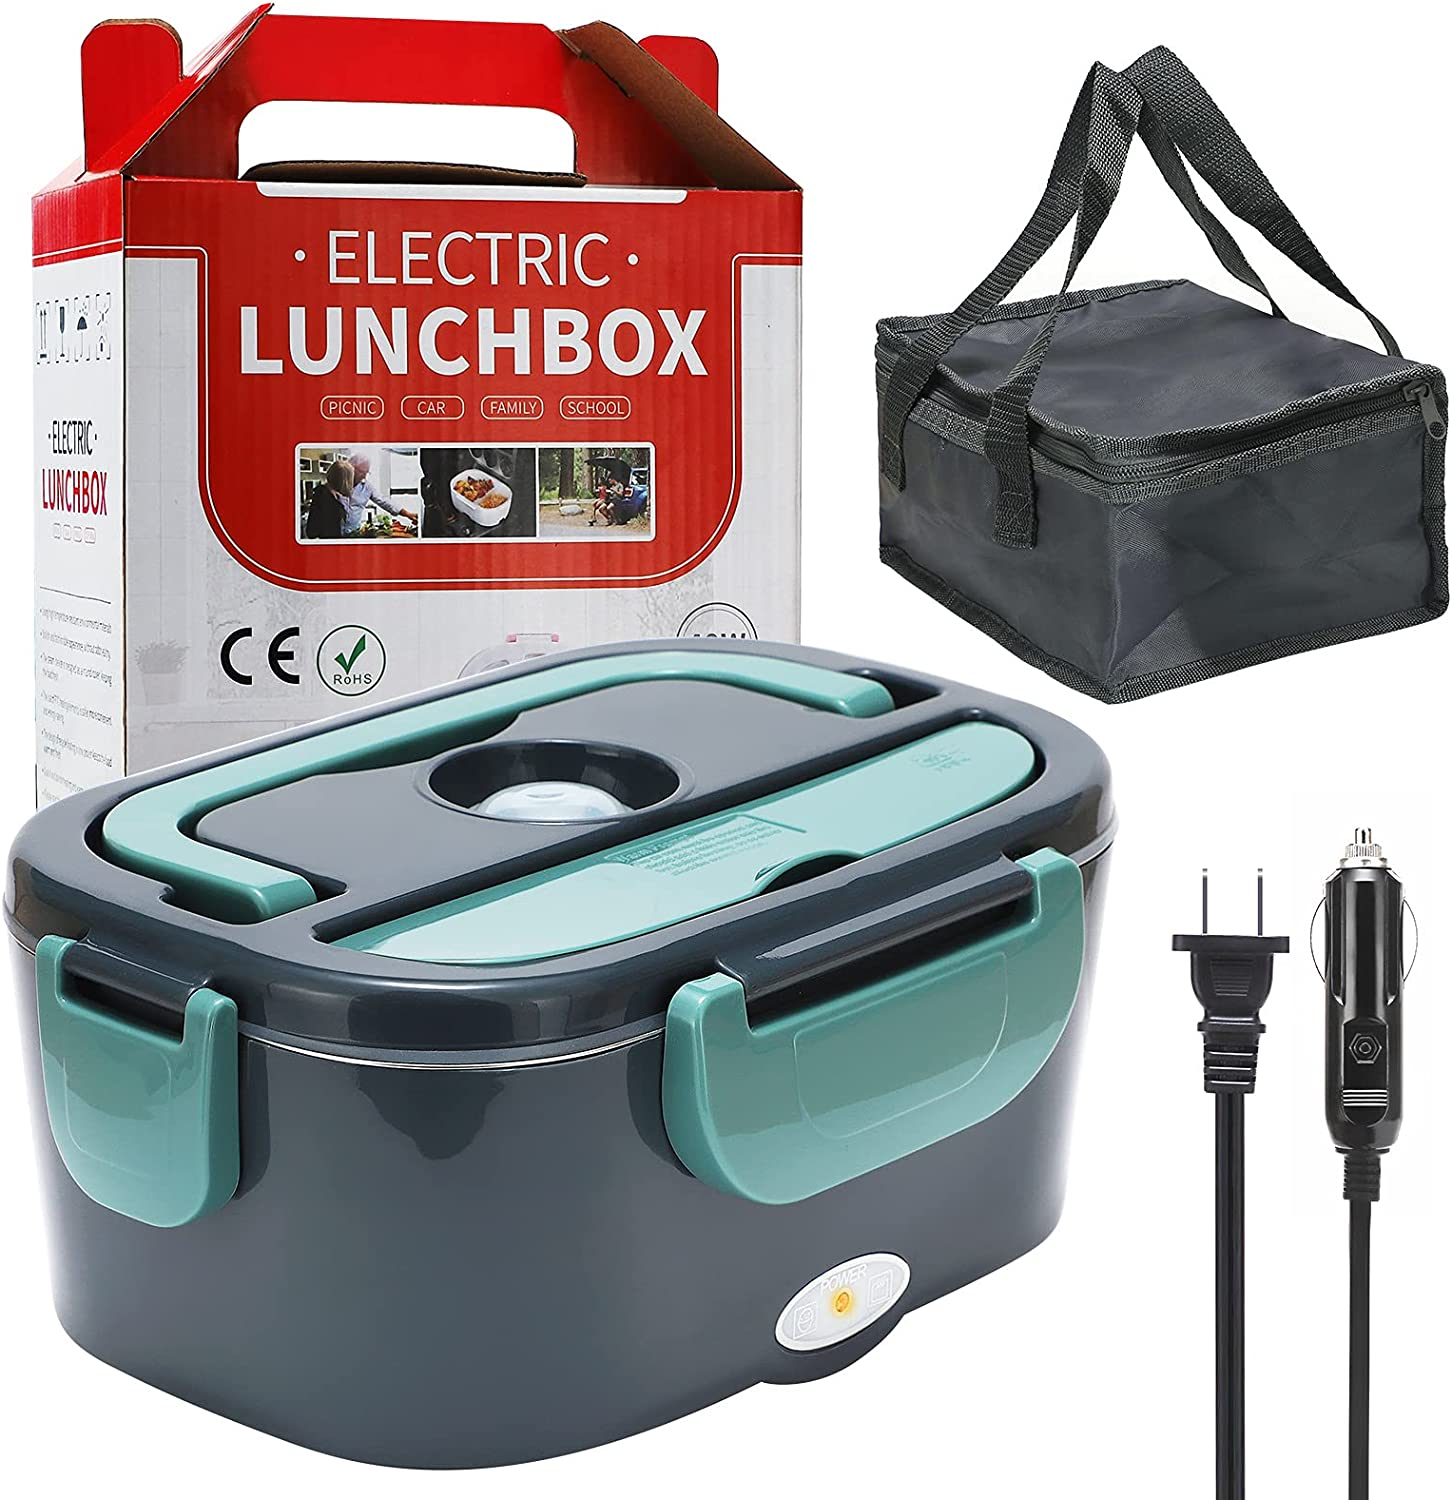 Electric Lunch Box, ENFOURCLASS 2 in 1 Portable Food Heater, 1.5L Portable Lunch Containers, Includes 2 Compartments and Stainless Steel Spoon & Fork, 12V/110V, Food Warmer for Car/Home